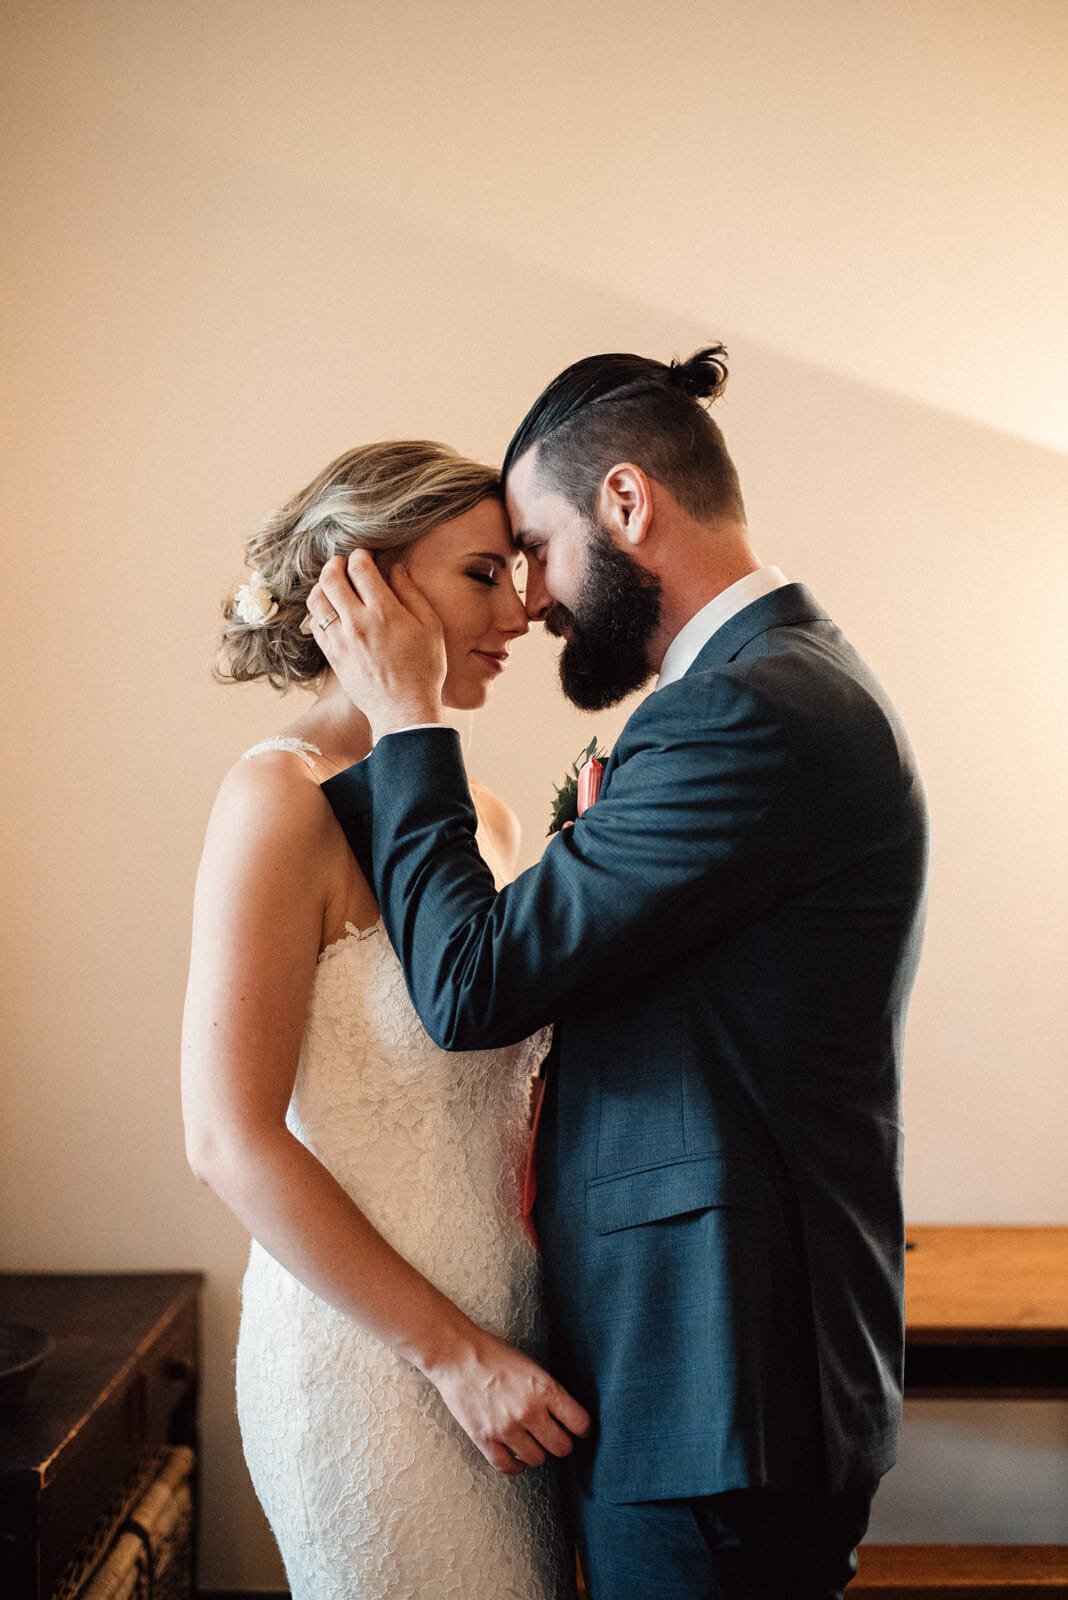 bride and groom share an intimate and quiet moment in enoch turner school